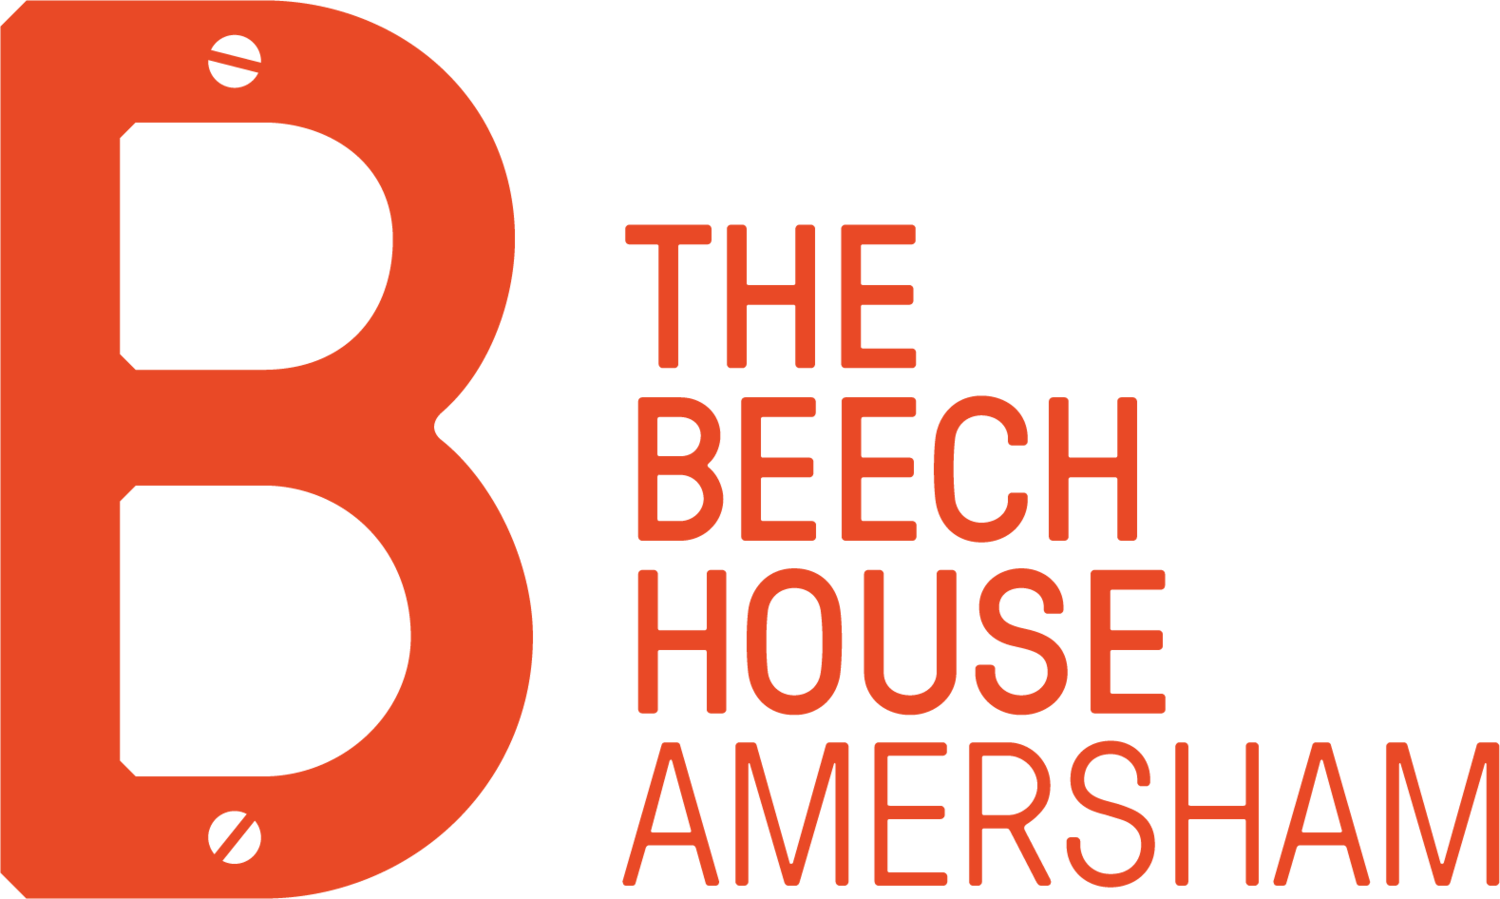 Beech House Amersham